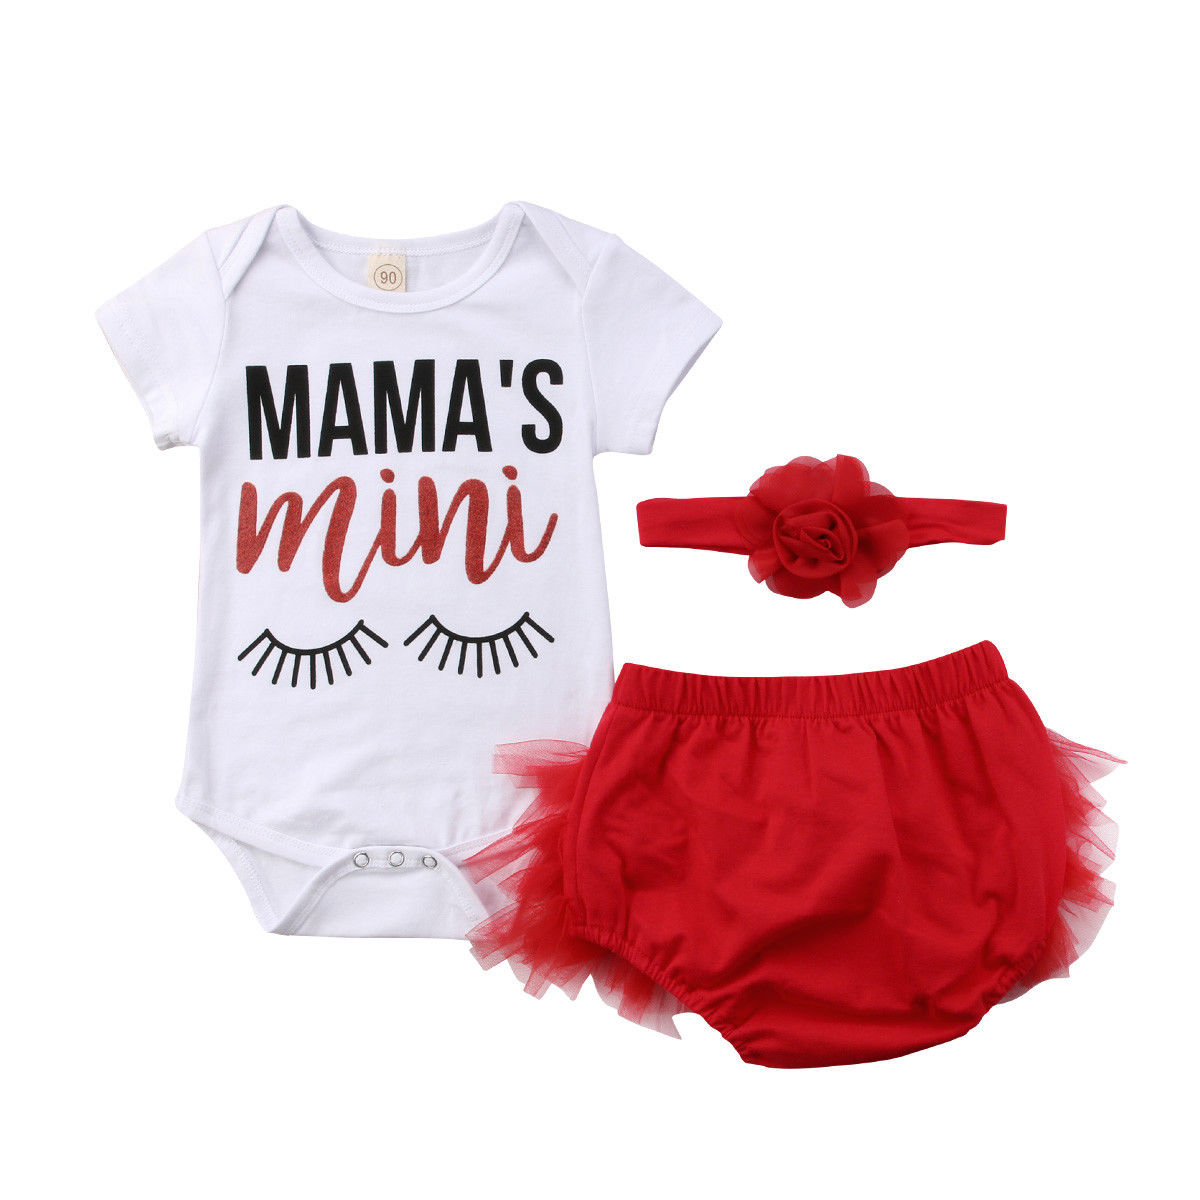 3 Pieces Mamas Mini Print Short Sleeve Bodysuit And Tulle Bloomers With Headband Set For Baby Girl Clothes